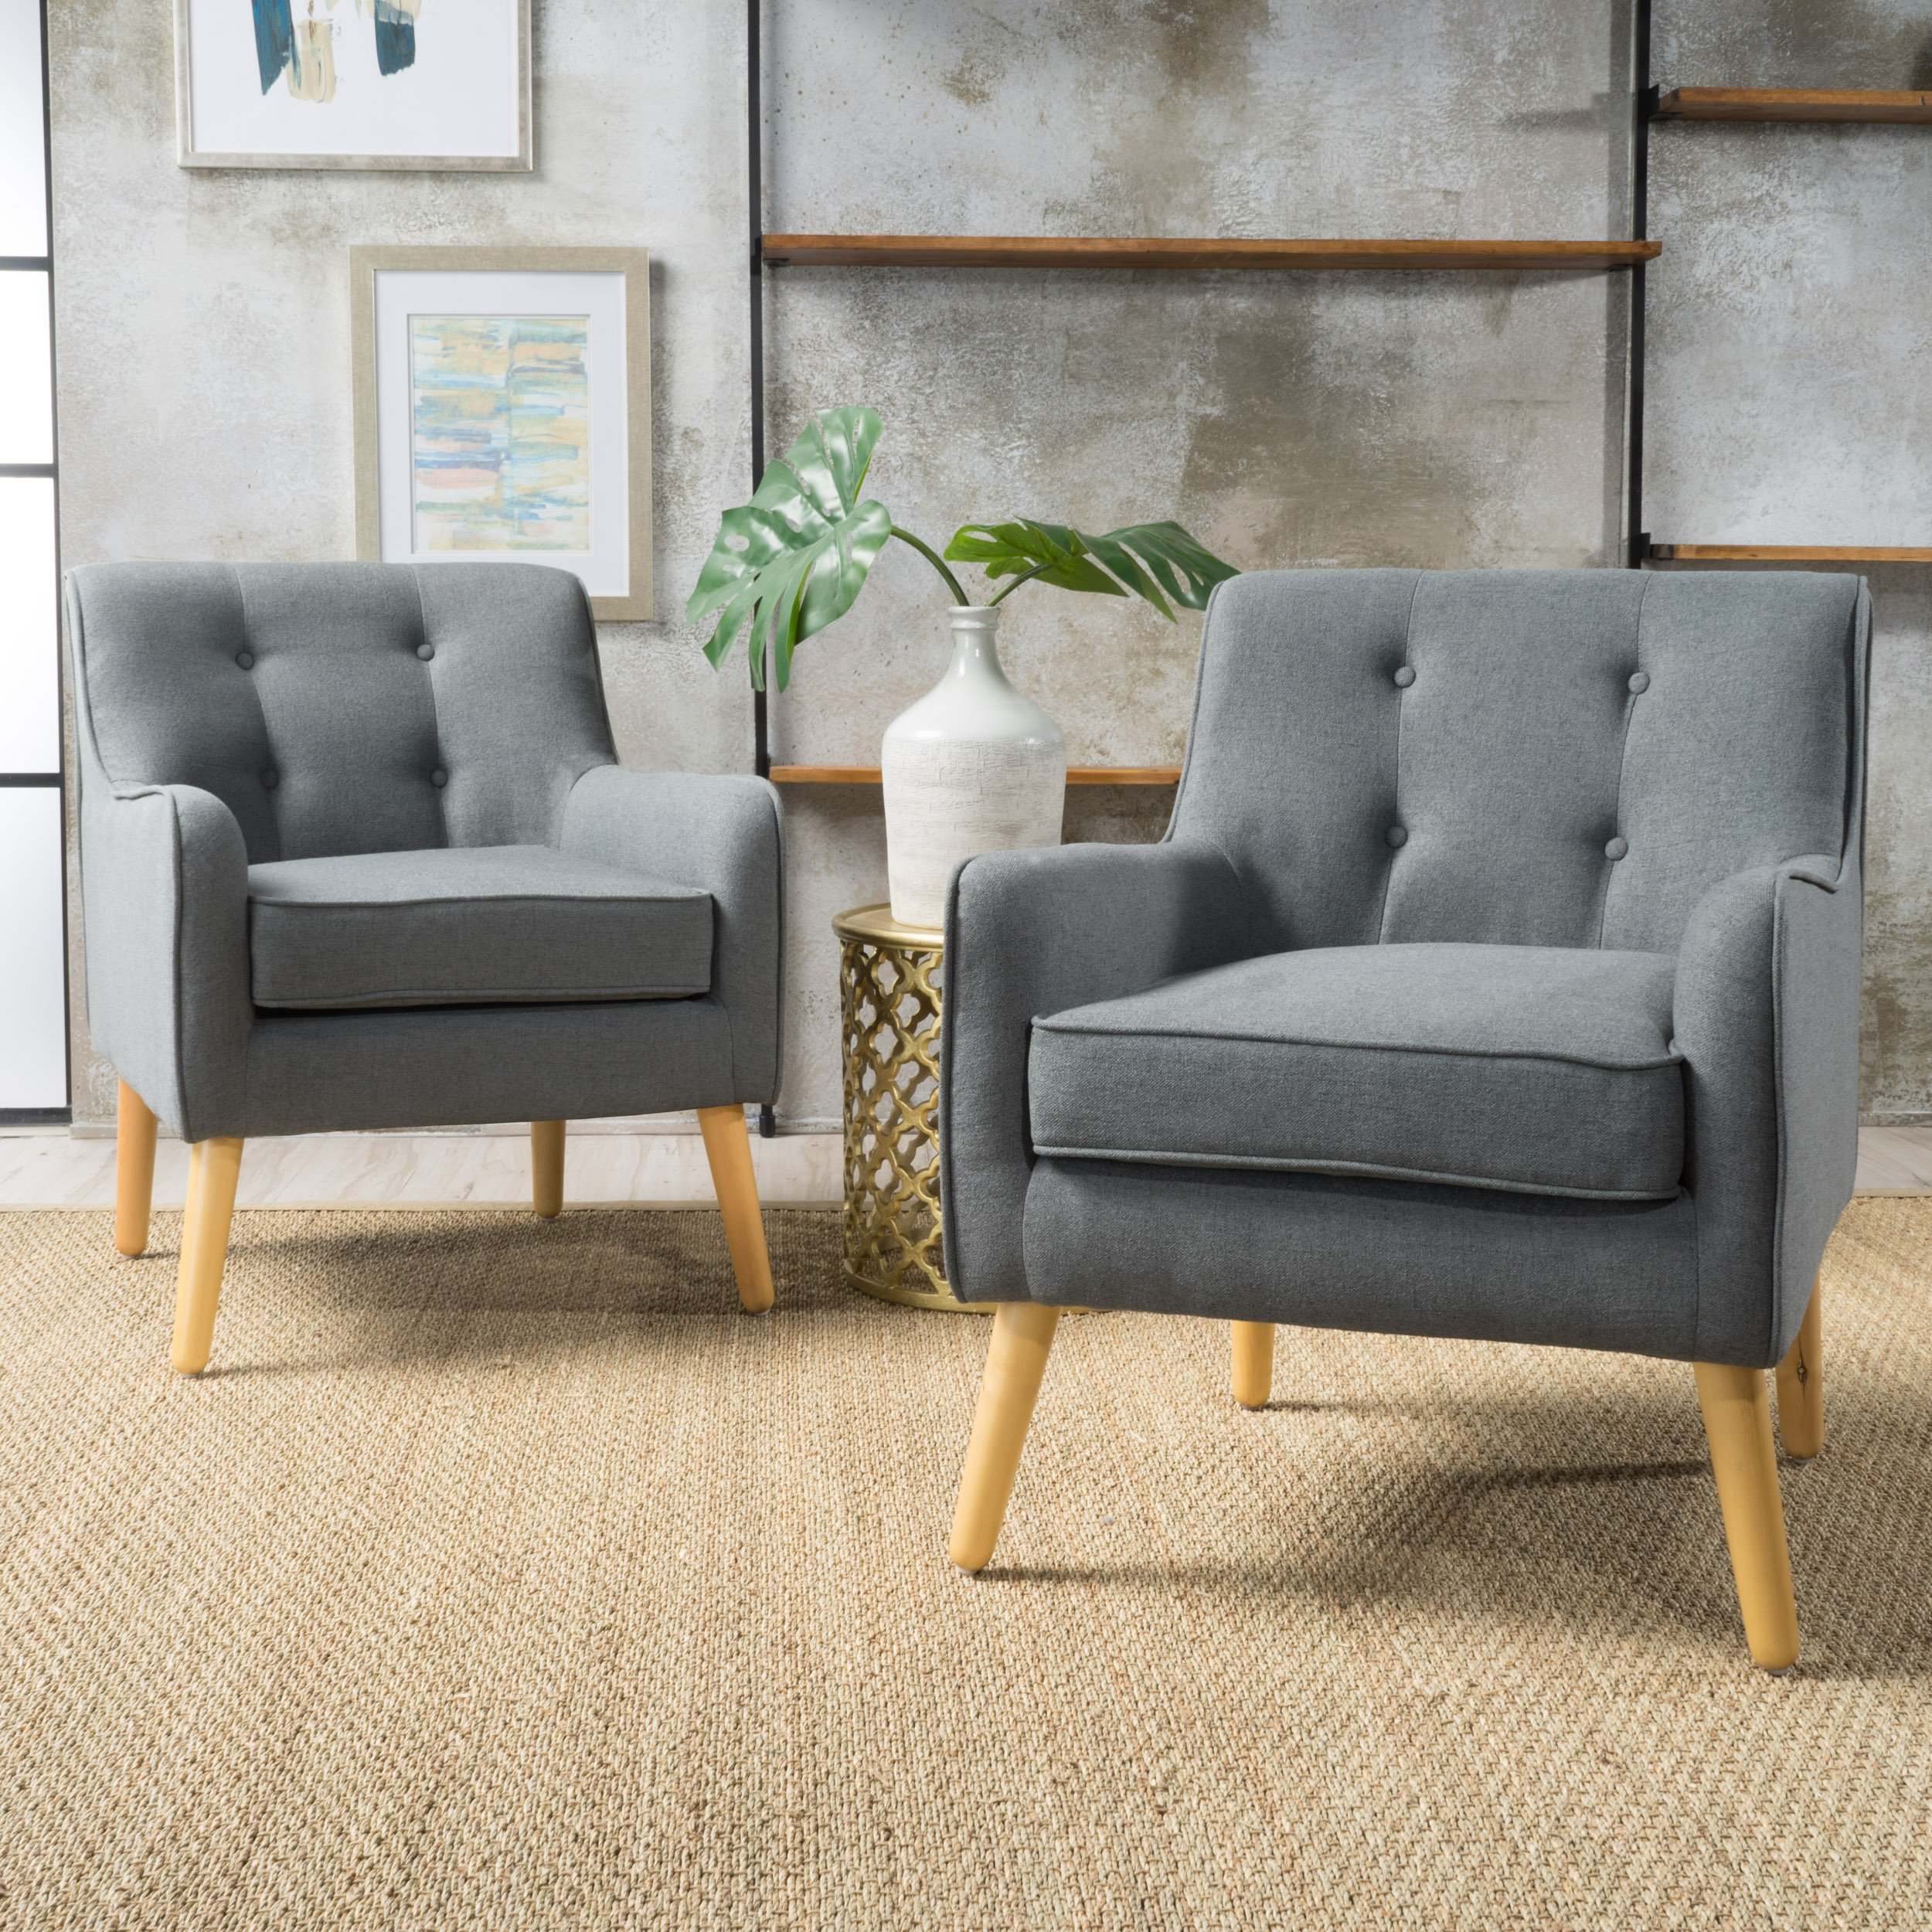 Christopher Knight Home 300571 Felicity Arm Chair (Set of 2), Charcoal by Christopher Knight Home